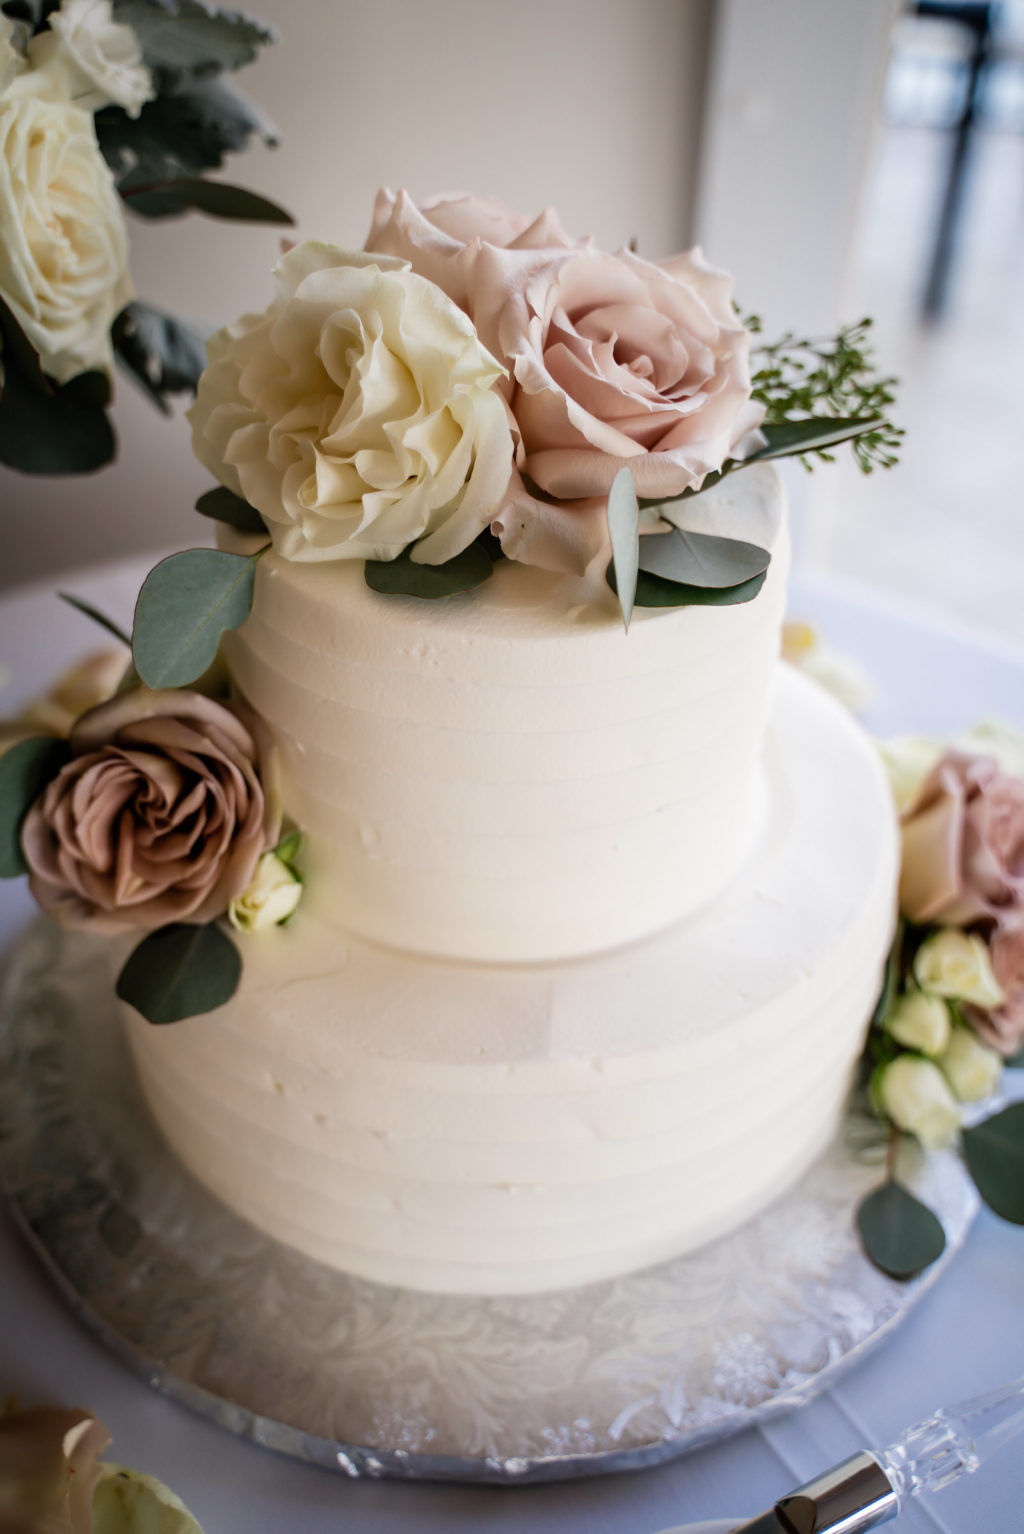 Simple Two Tier White Wedding Cake with Real Mauve and Ivory Roses Cake Topper